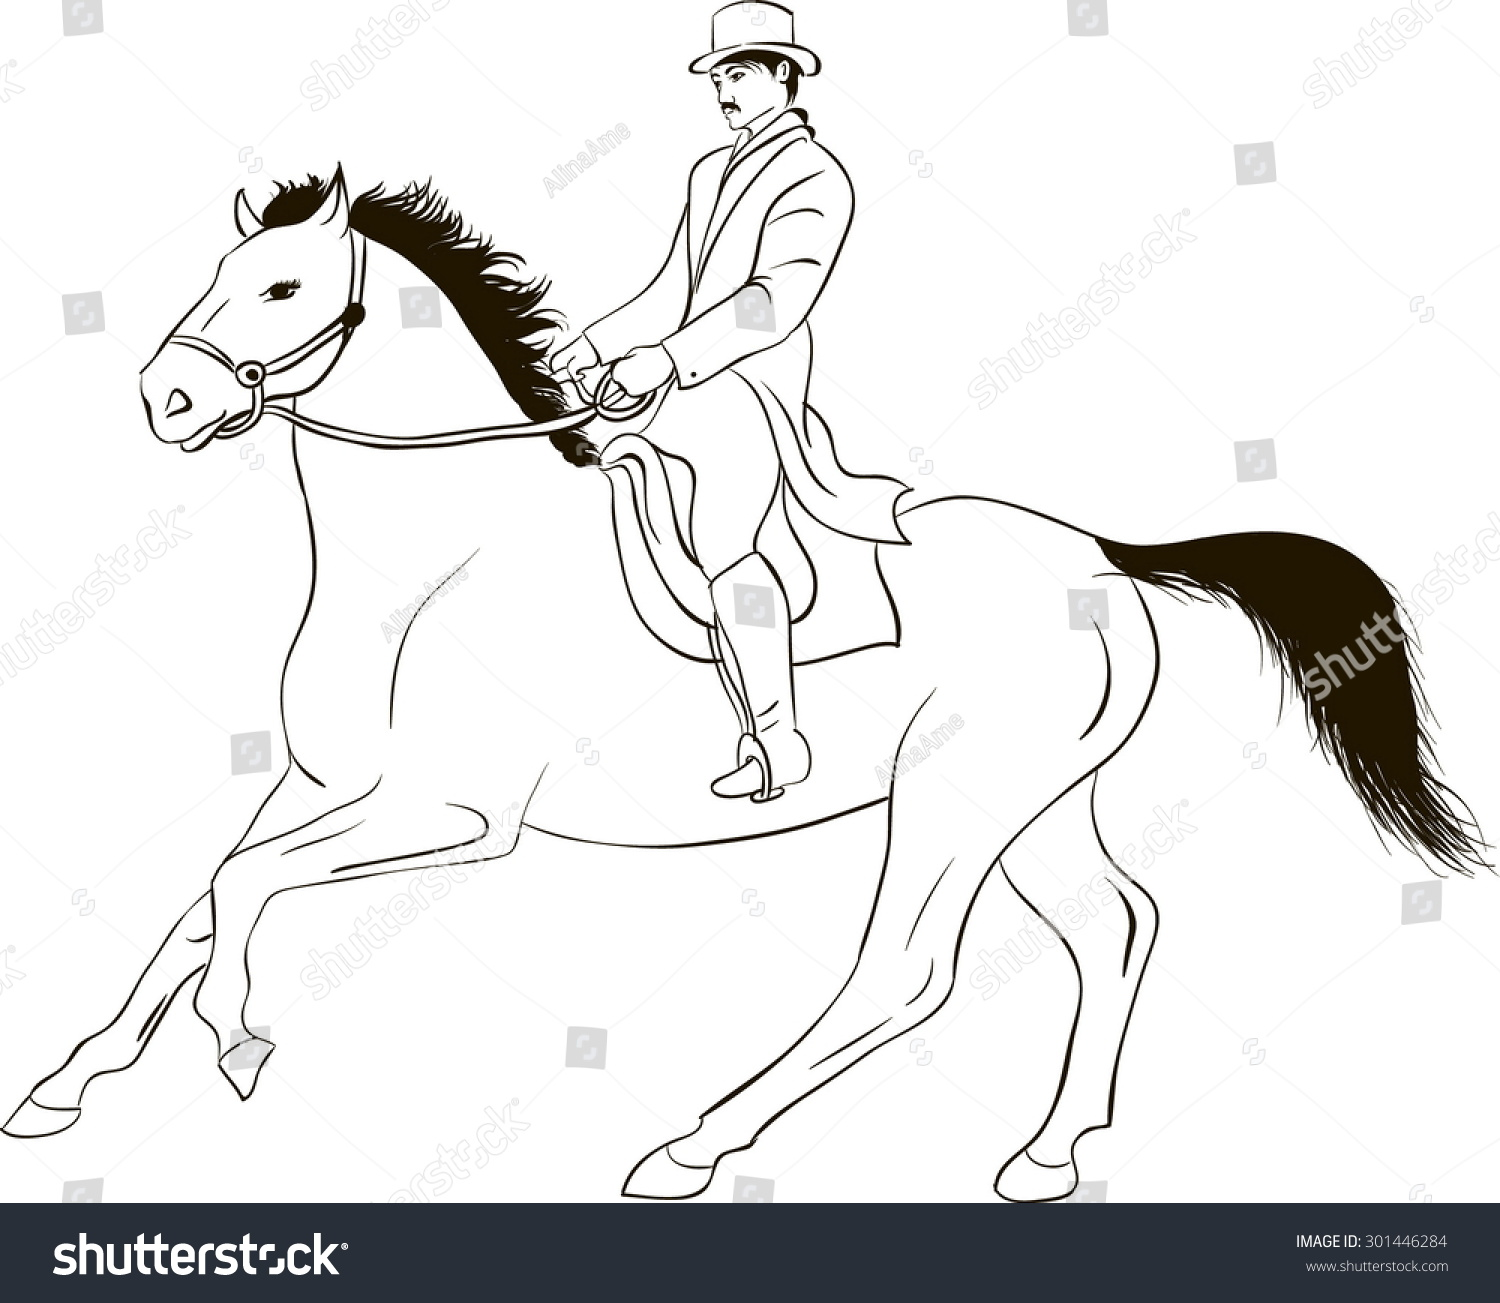 Drawing Of Line Art Of A Prancing Horse With A Rider